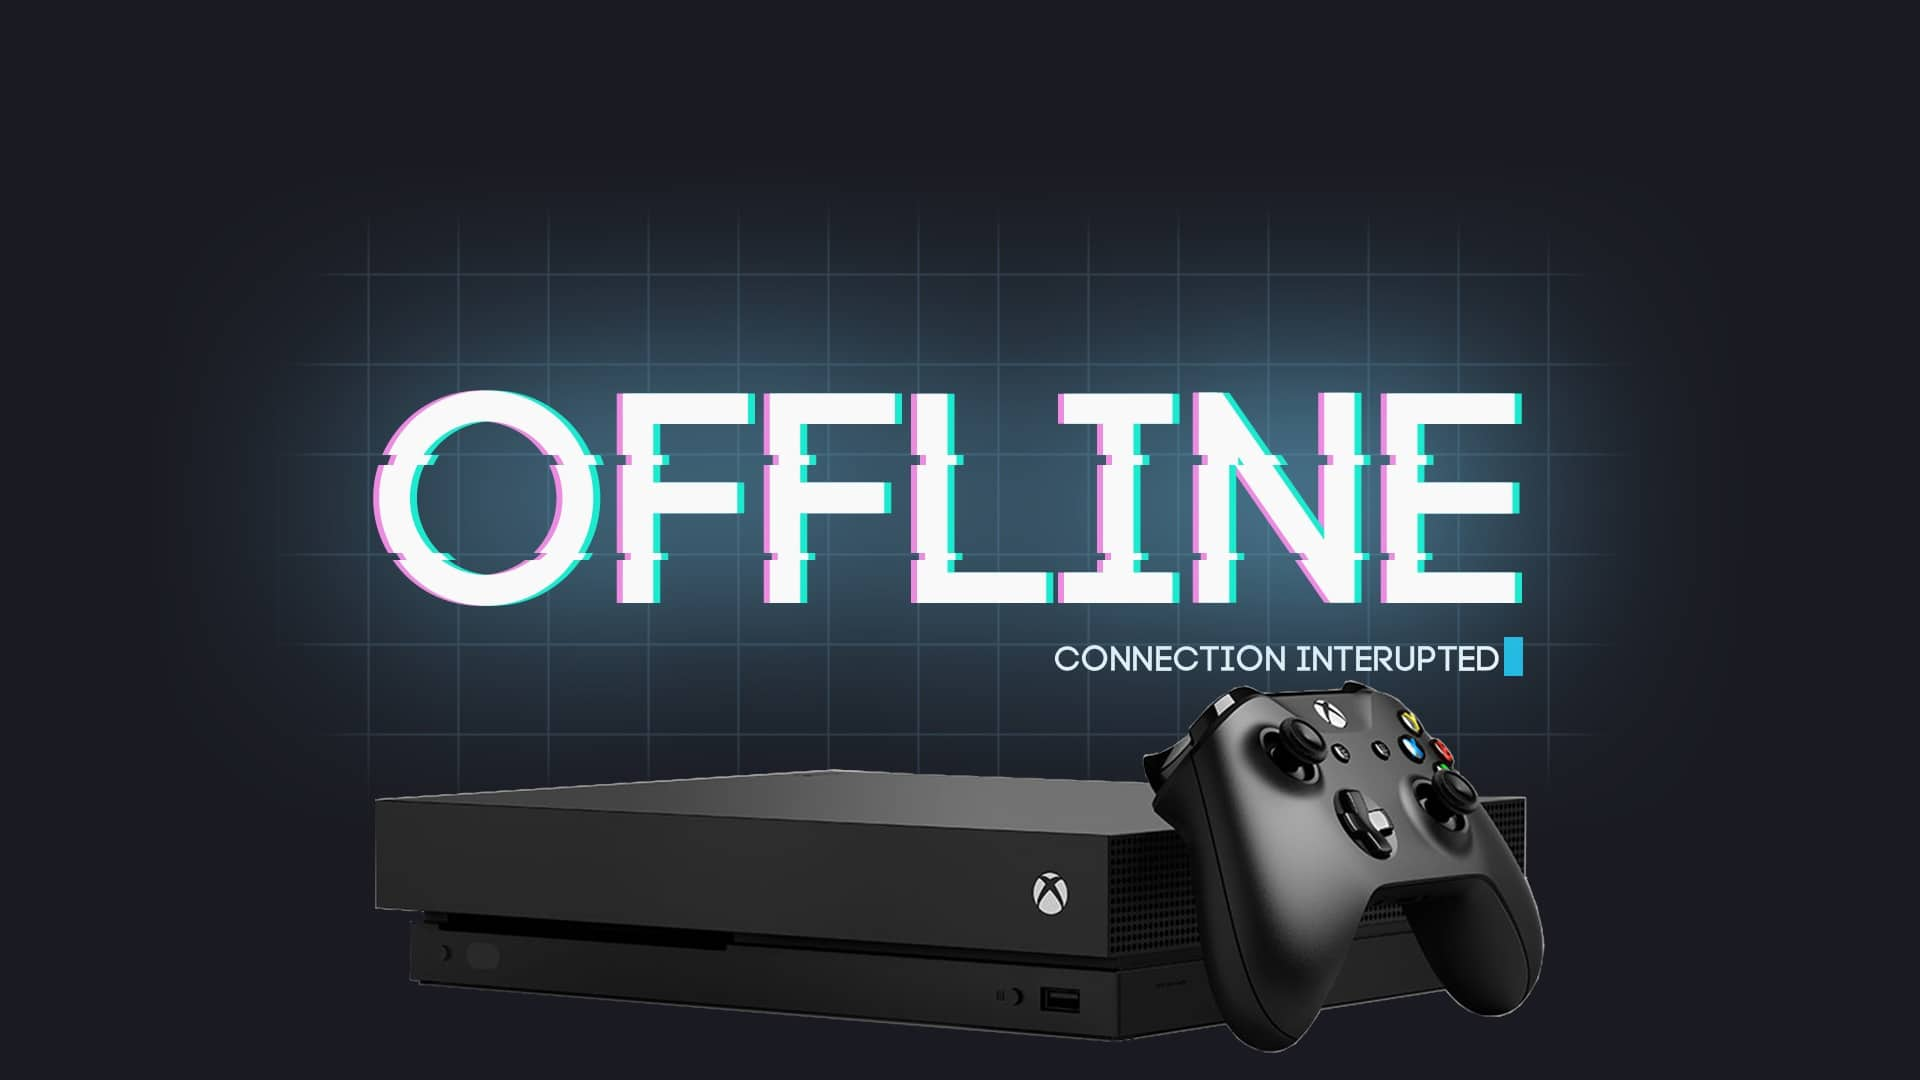 How To Appear Offline On Xbox Series X|S